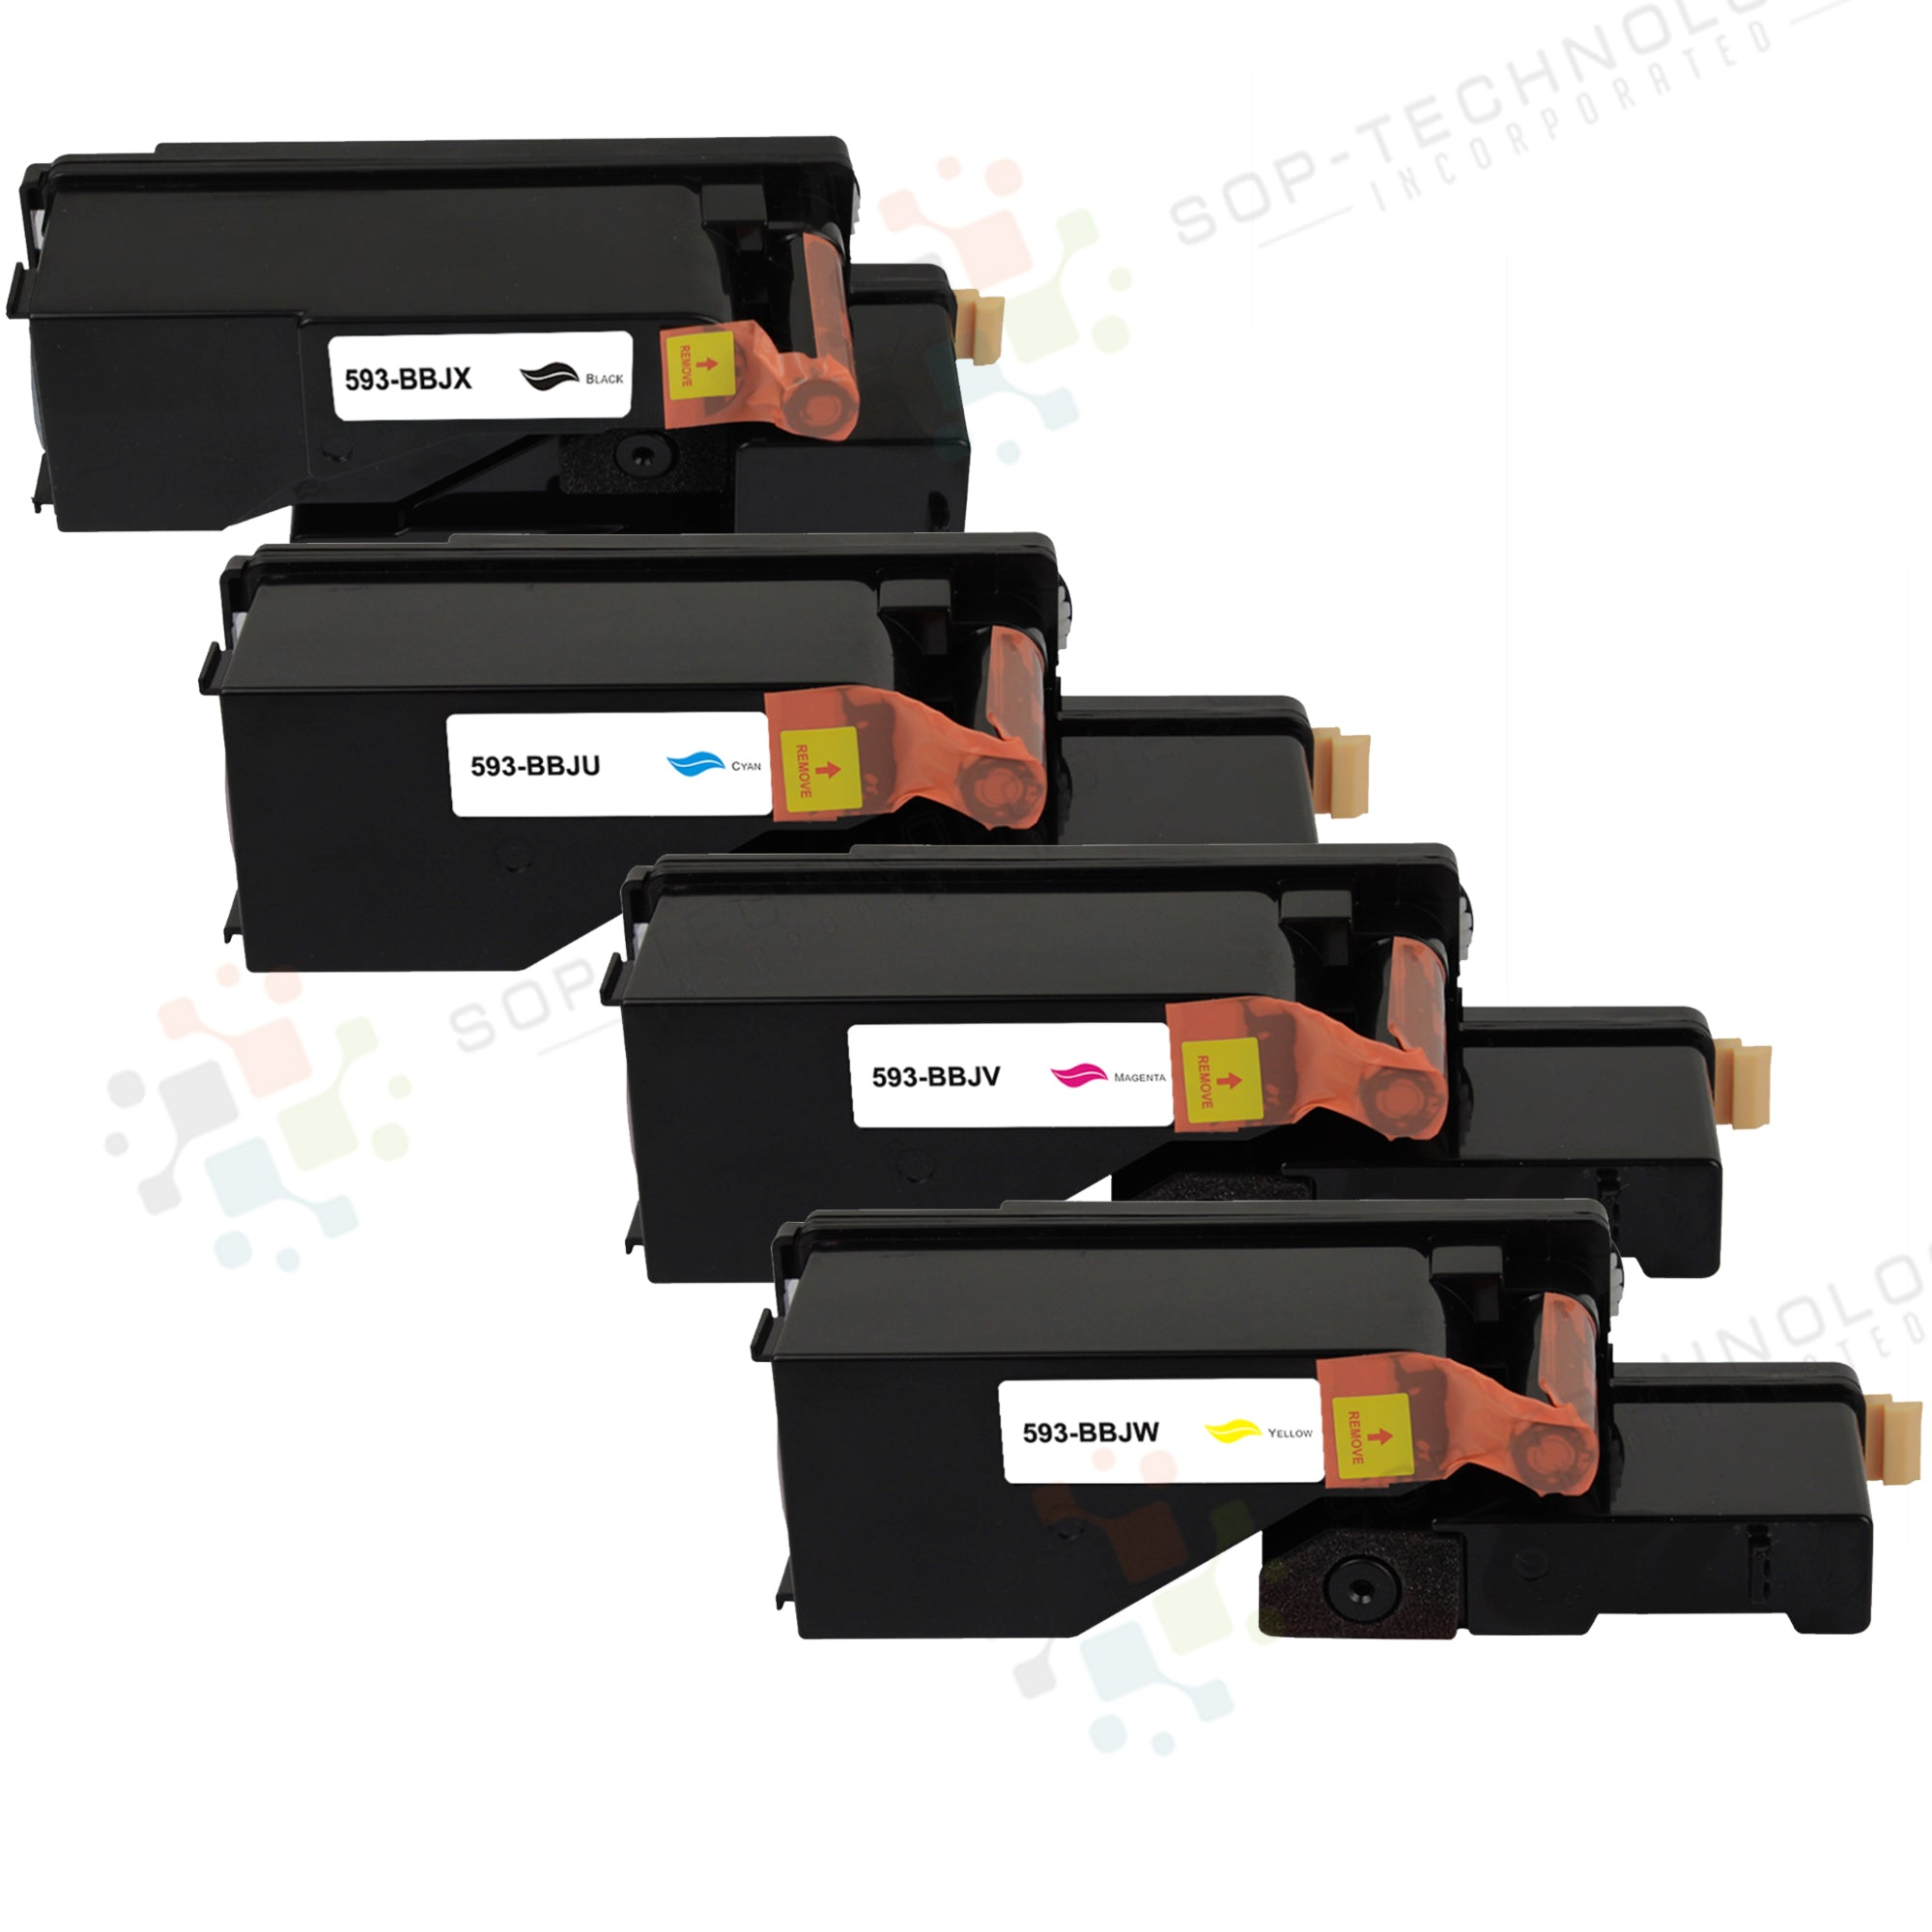 4 Pack Compatible Toner Cartridge Replacement for Dell E525W - SOP-TECHNOLOGIES, INC.